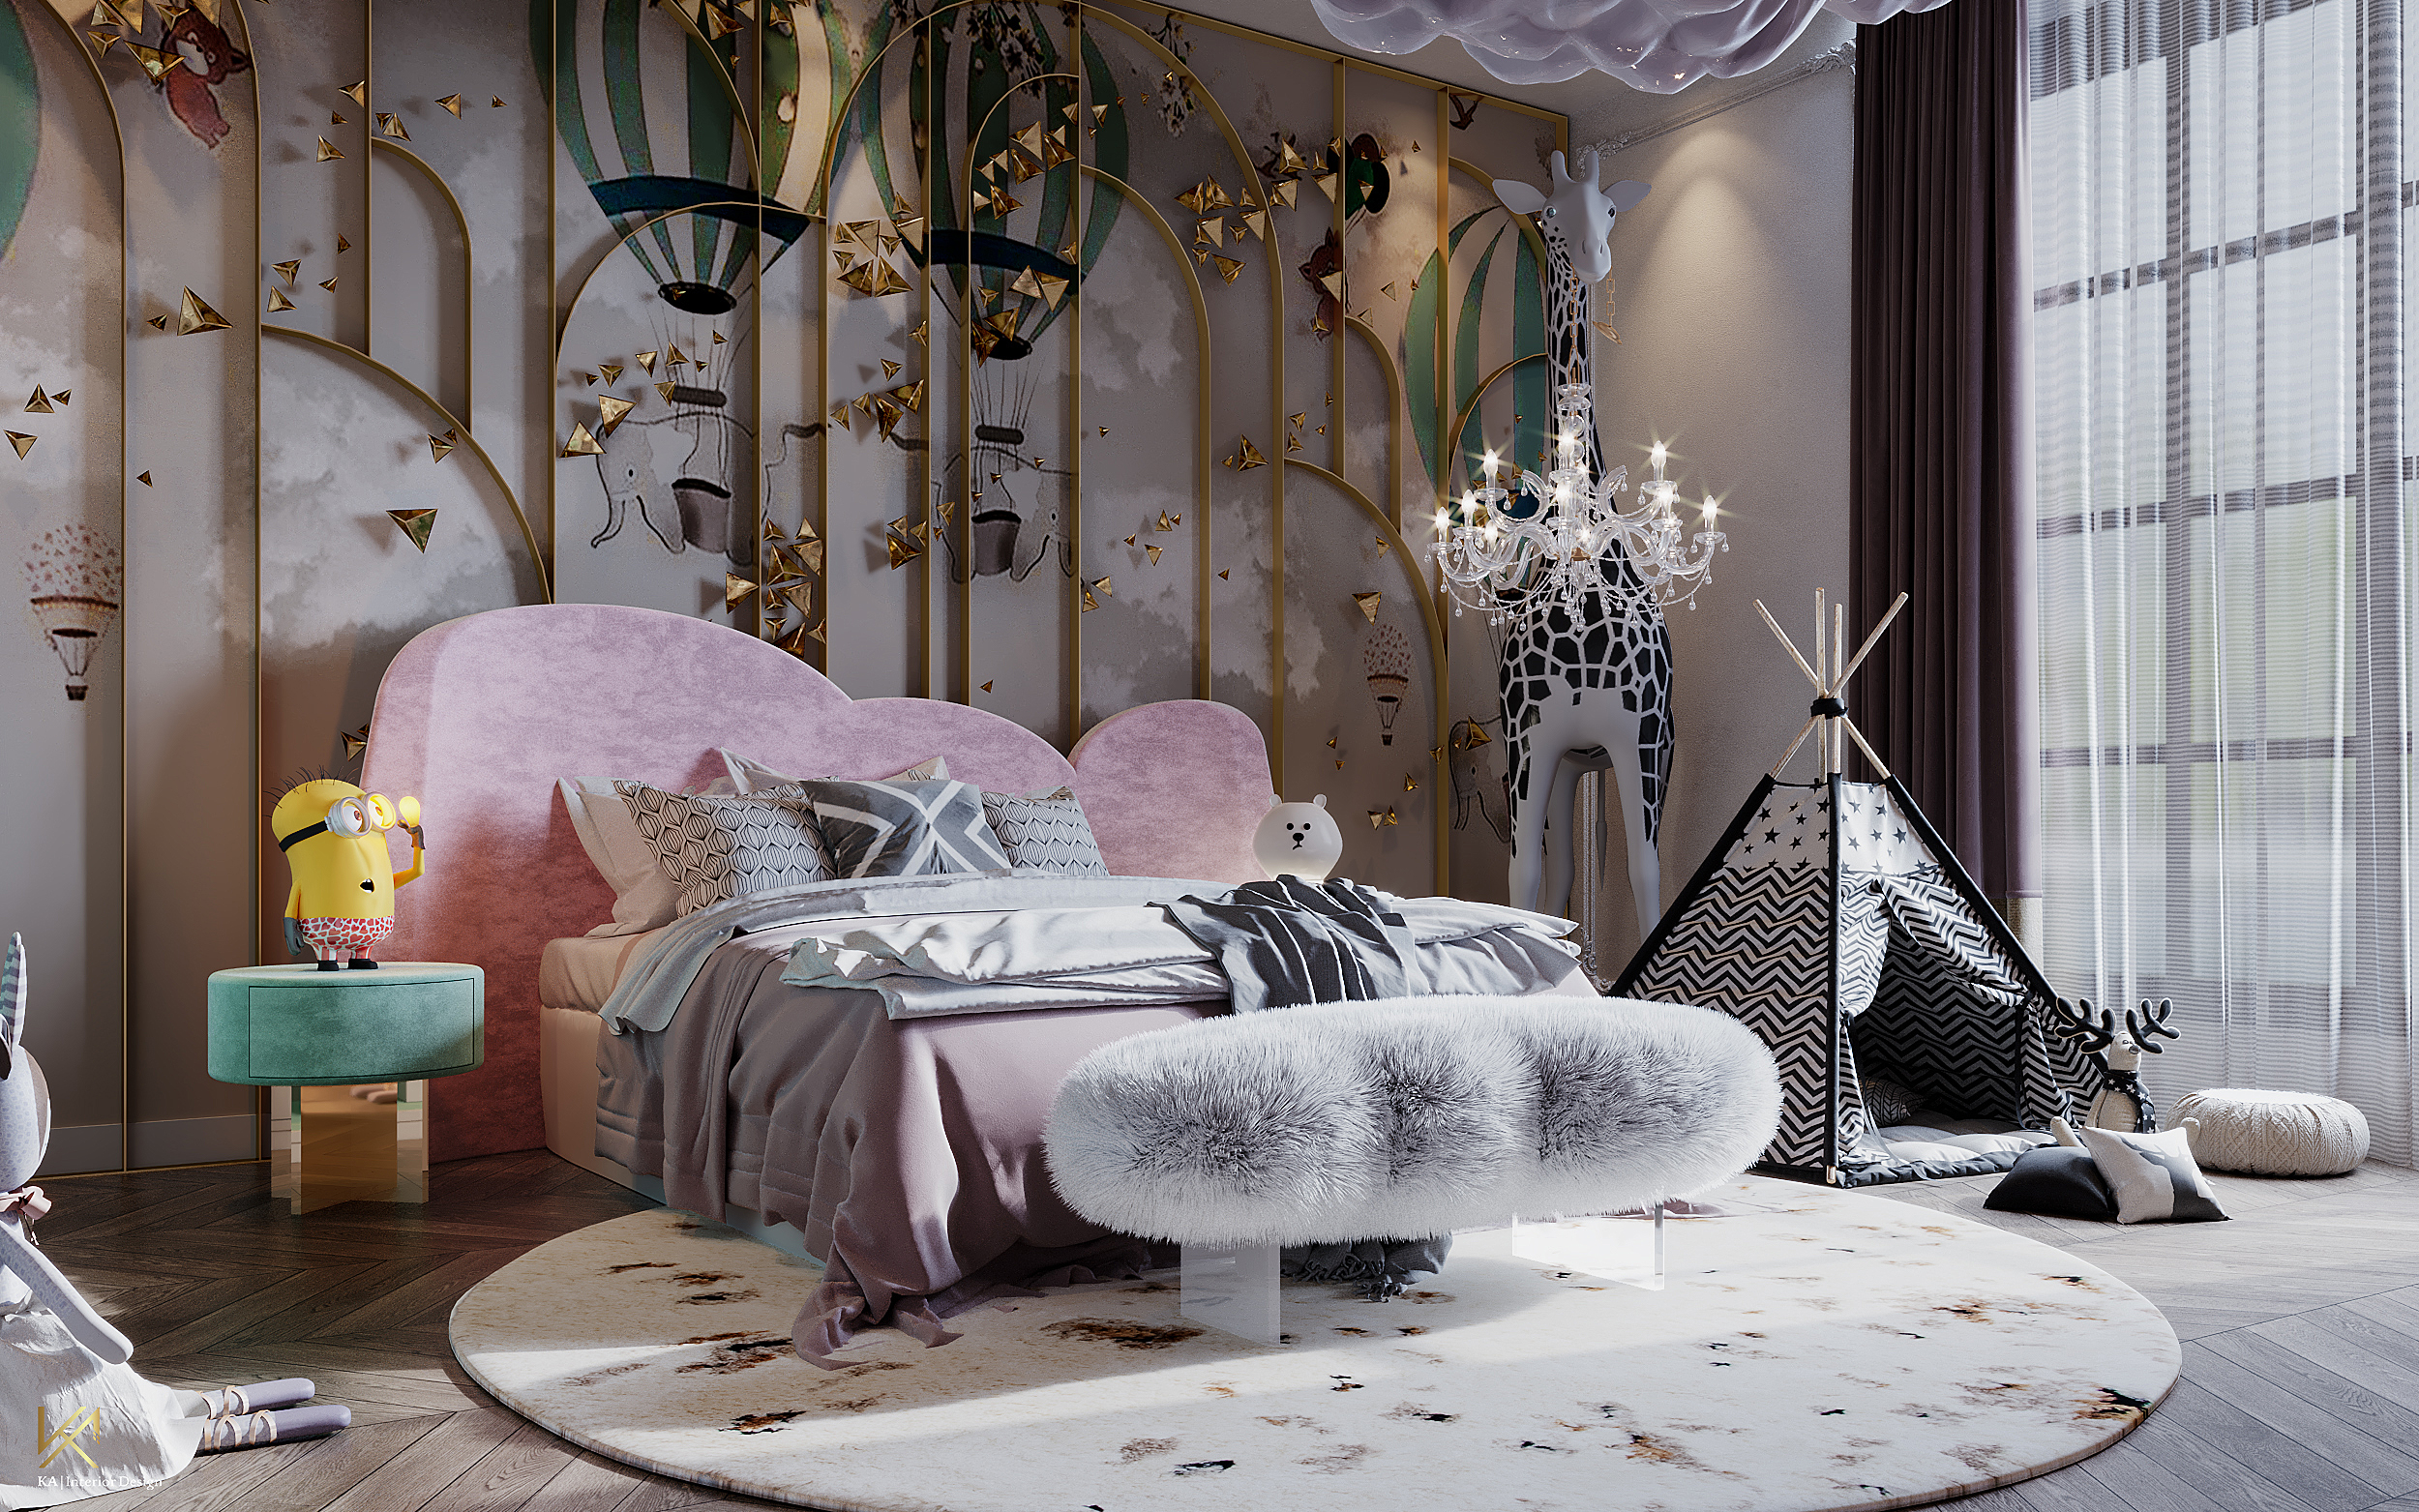 Luxury Girls Room: In a Cloudy Sky, be a golden star-2